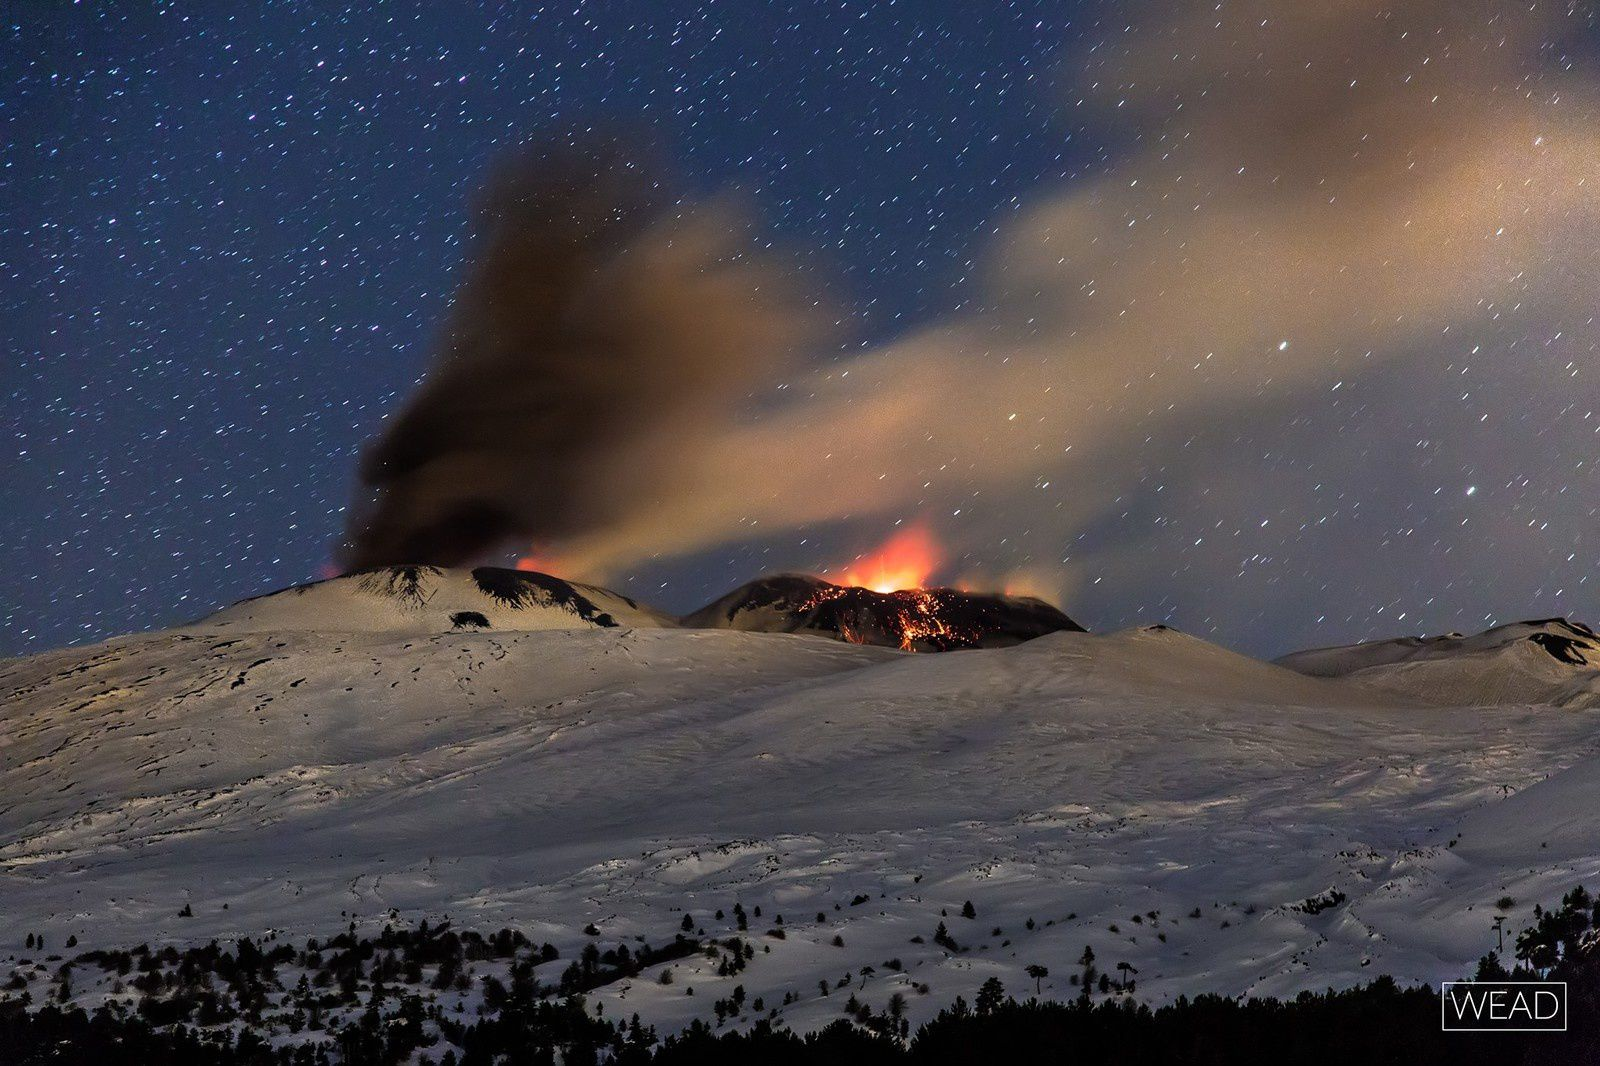 Etna - Strombolian activity at the Bocca Nuov and the south-east craters - photo Marco Restivo 31.01.2017